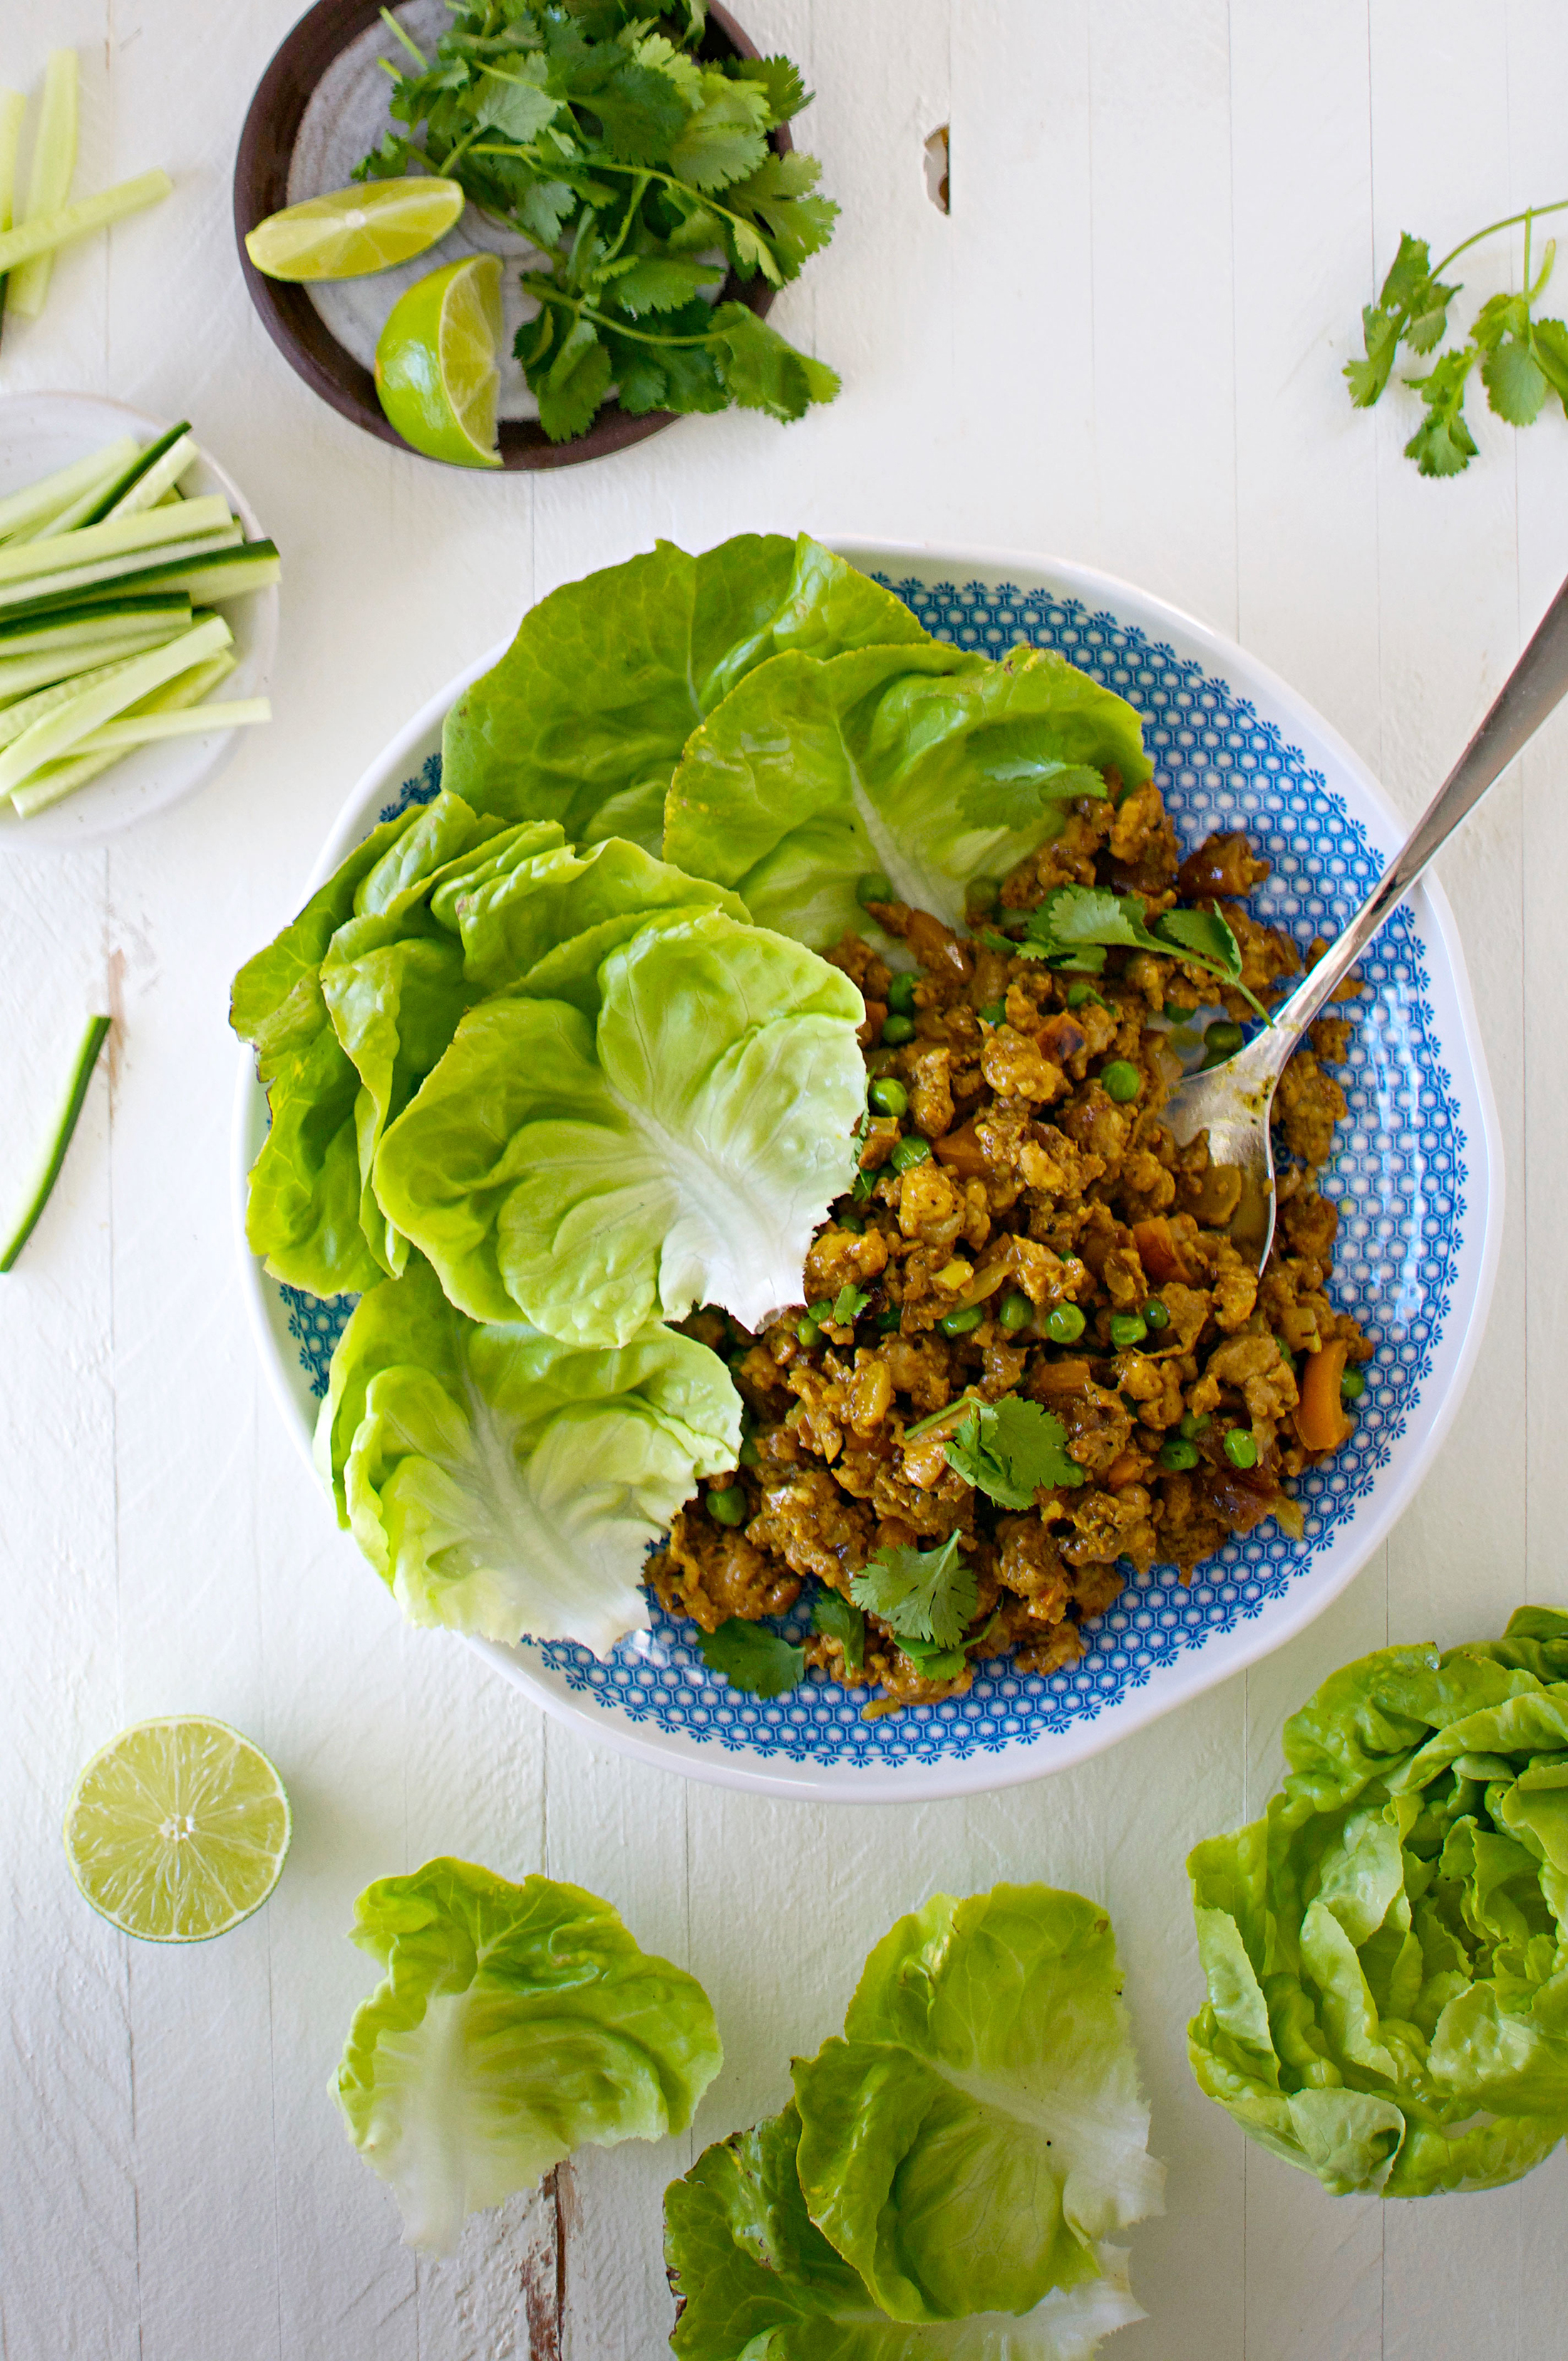 Indian Spiced Chicken Lettuce Wraps — a fast, flavorful healthy weeknight meal (or make-ahead SDL). Dairy-free. gluten-free. Vegetarian? Try it w/chickpeas.